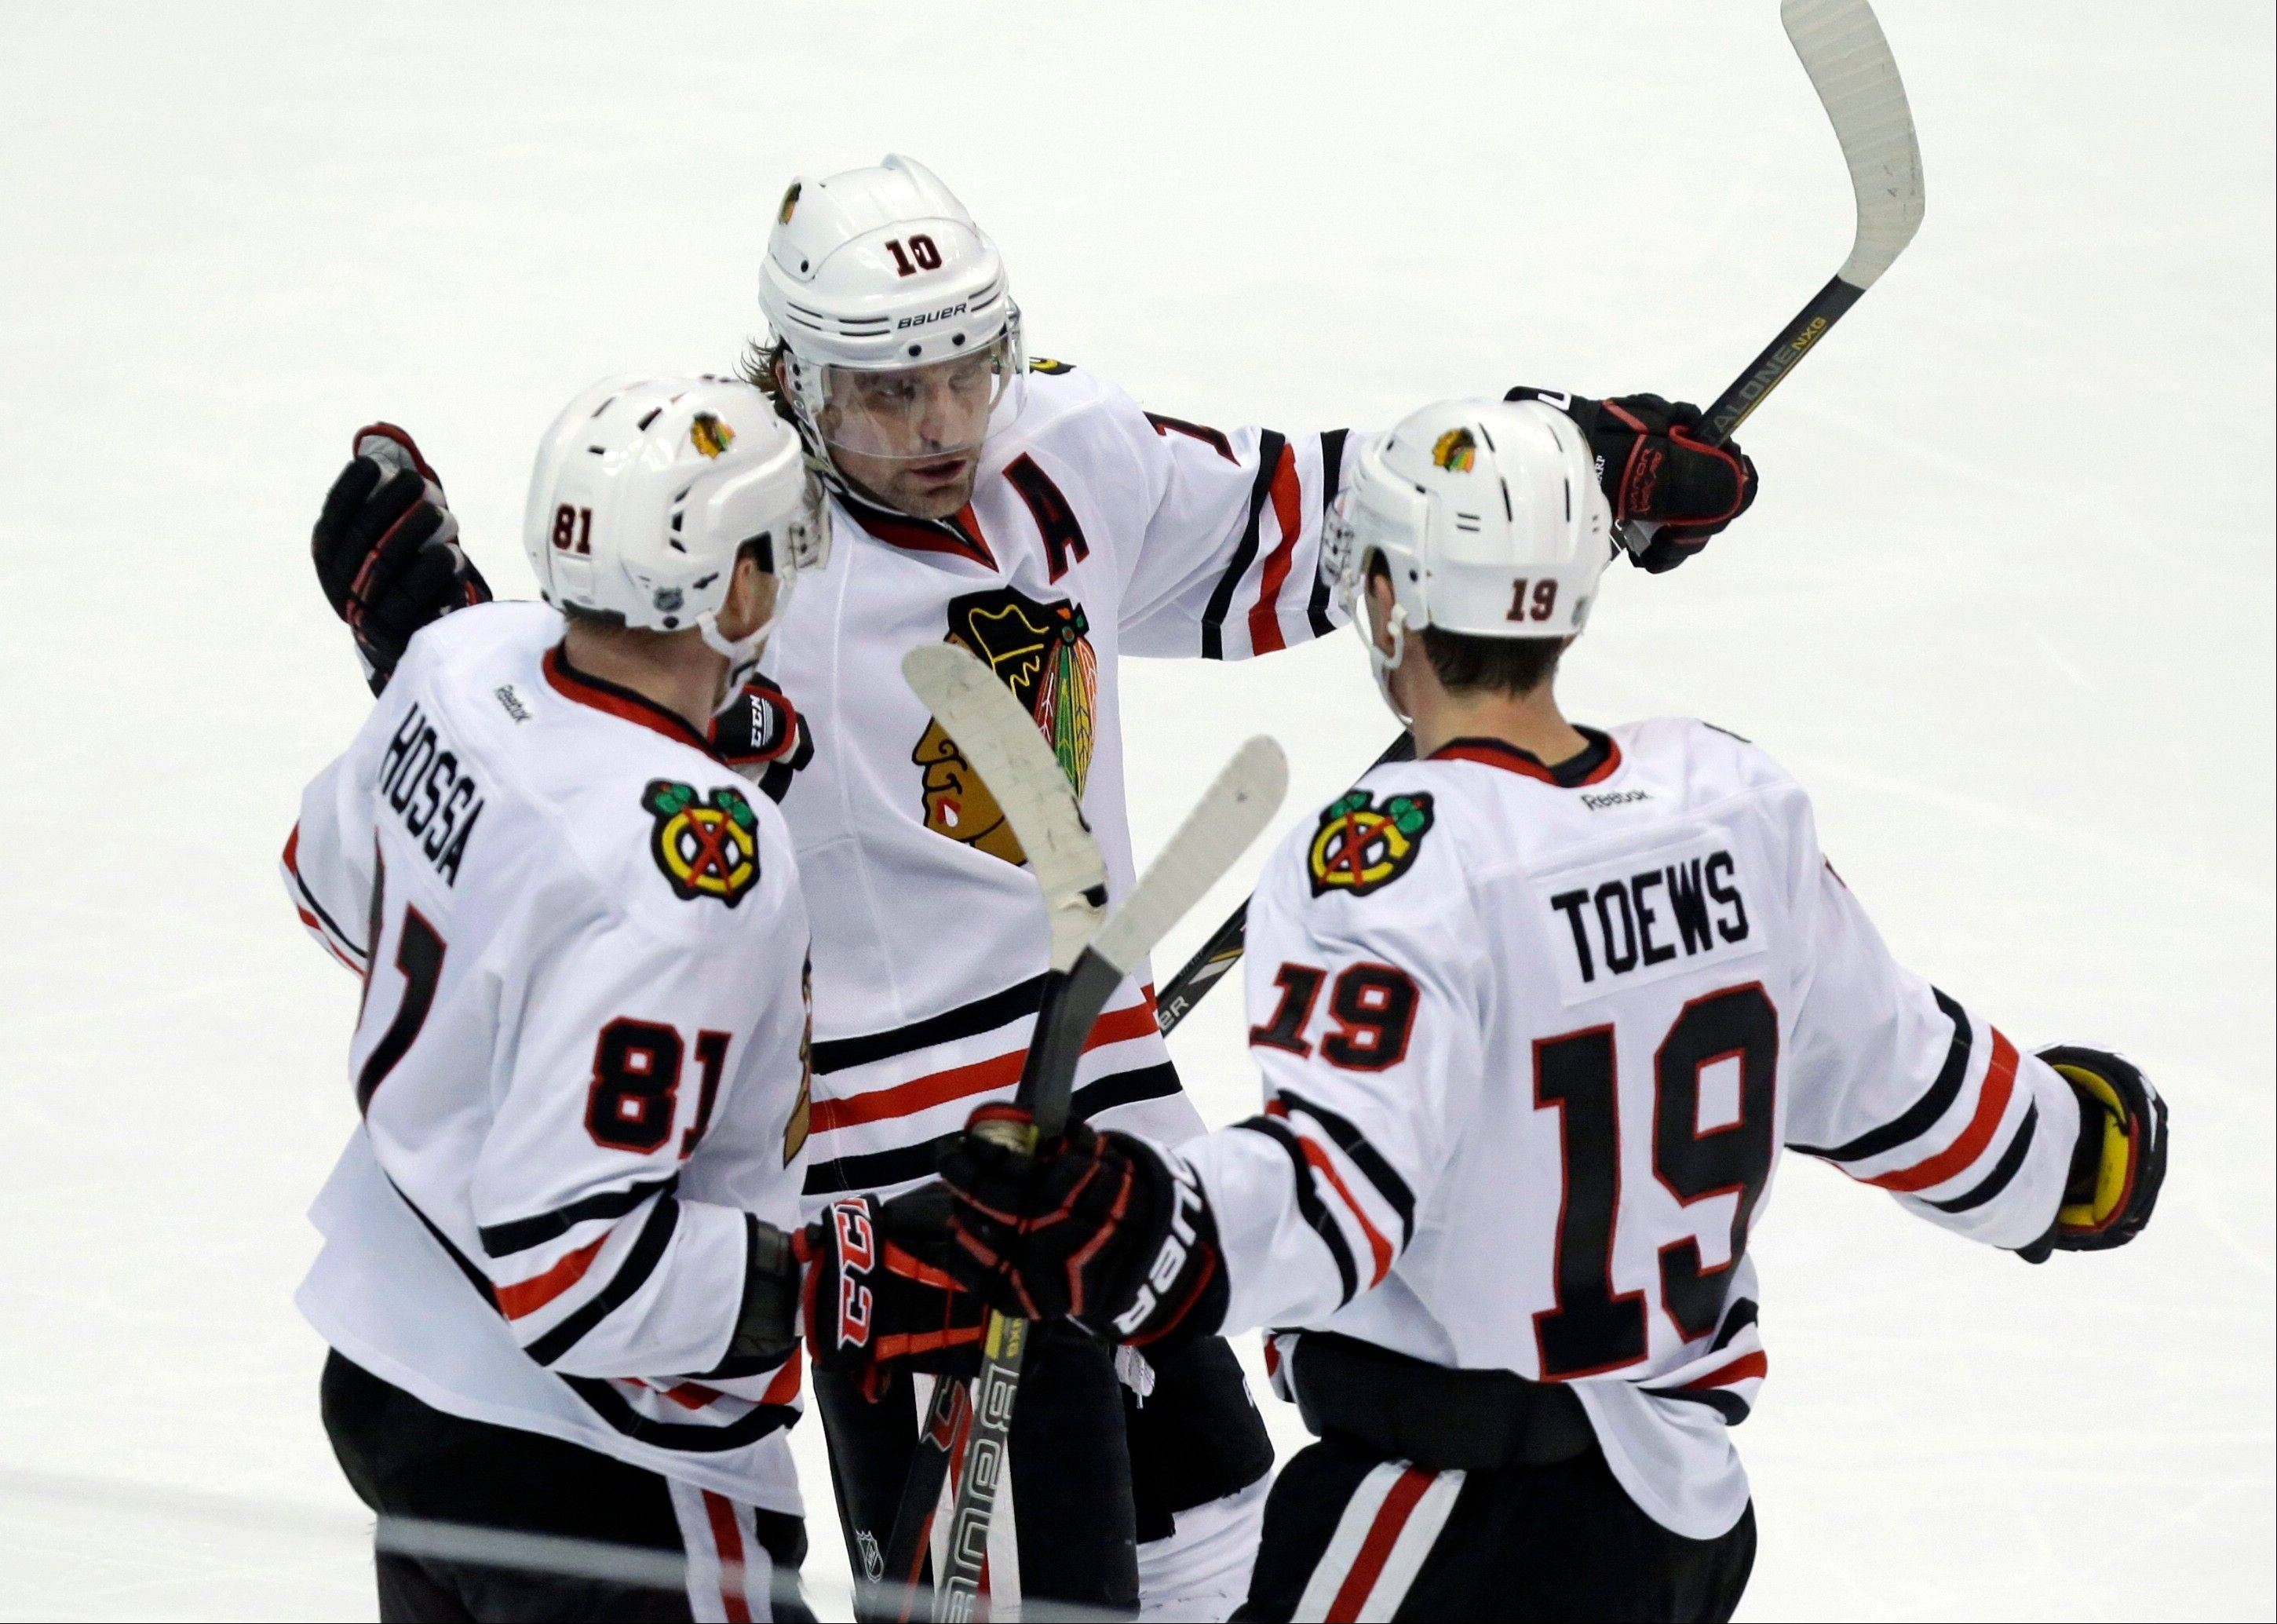 Patrick Sharp (10) and right winger Marian Hossa (81) celebrate a goal by center Jonathan Toews (19) against the Anaheim Ducks in the third period on Wednesday, Feb. 5, 2014. The Blackhawks have 84 points through 60 games, better than all defending champs to this point in the season since 2007 except the 2009 Red Wings.